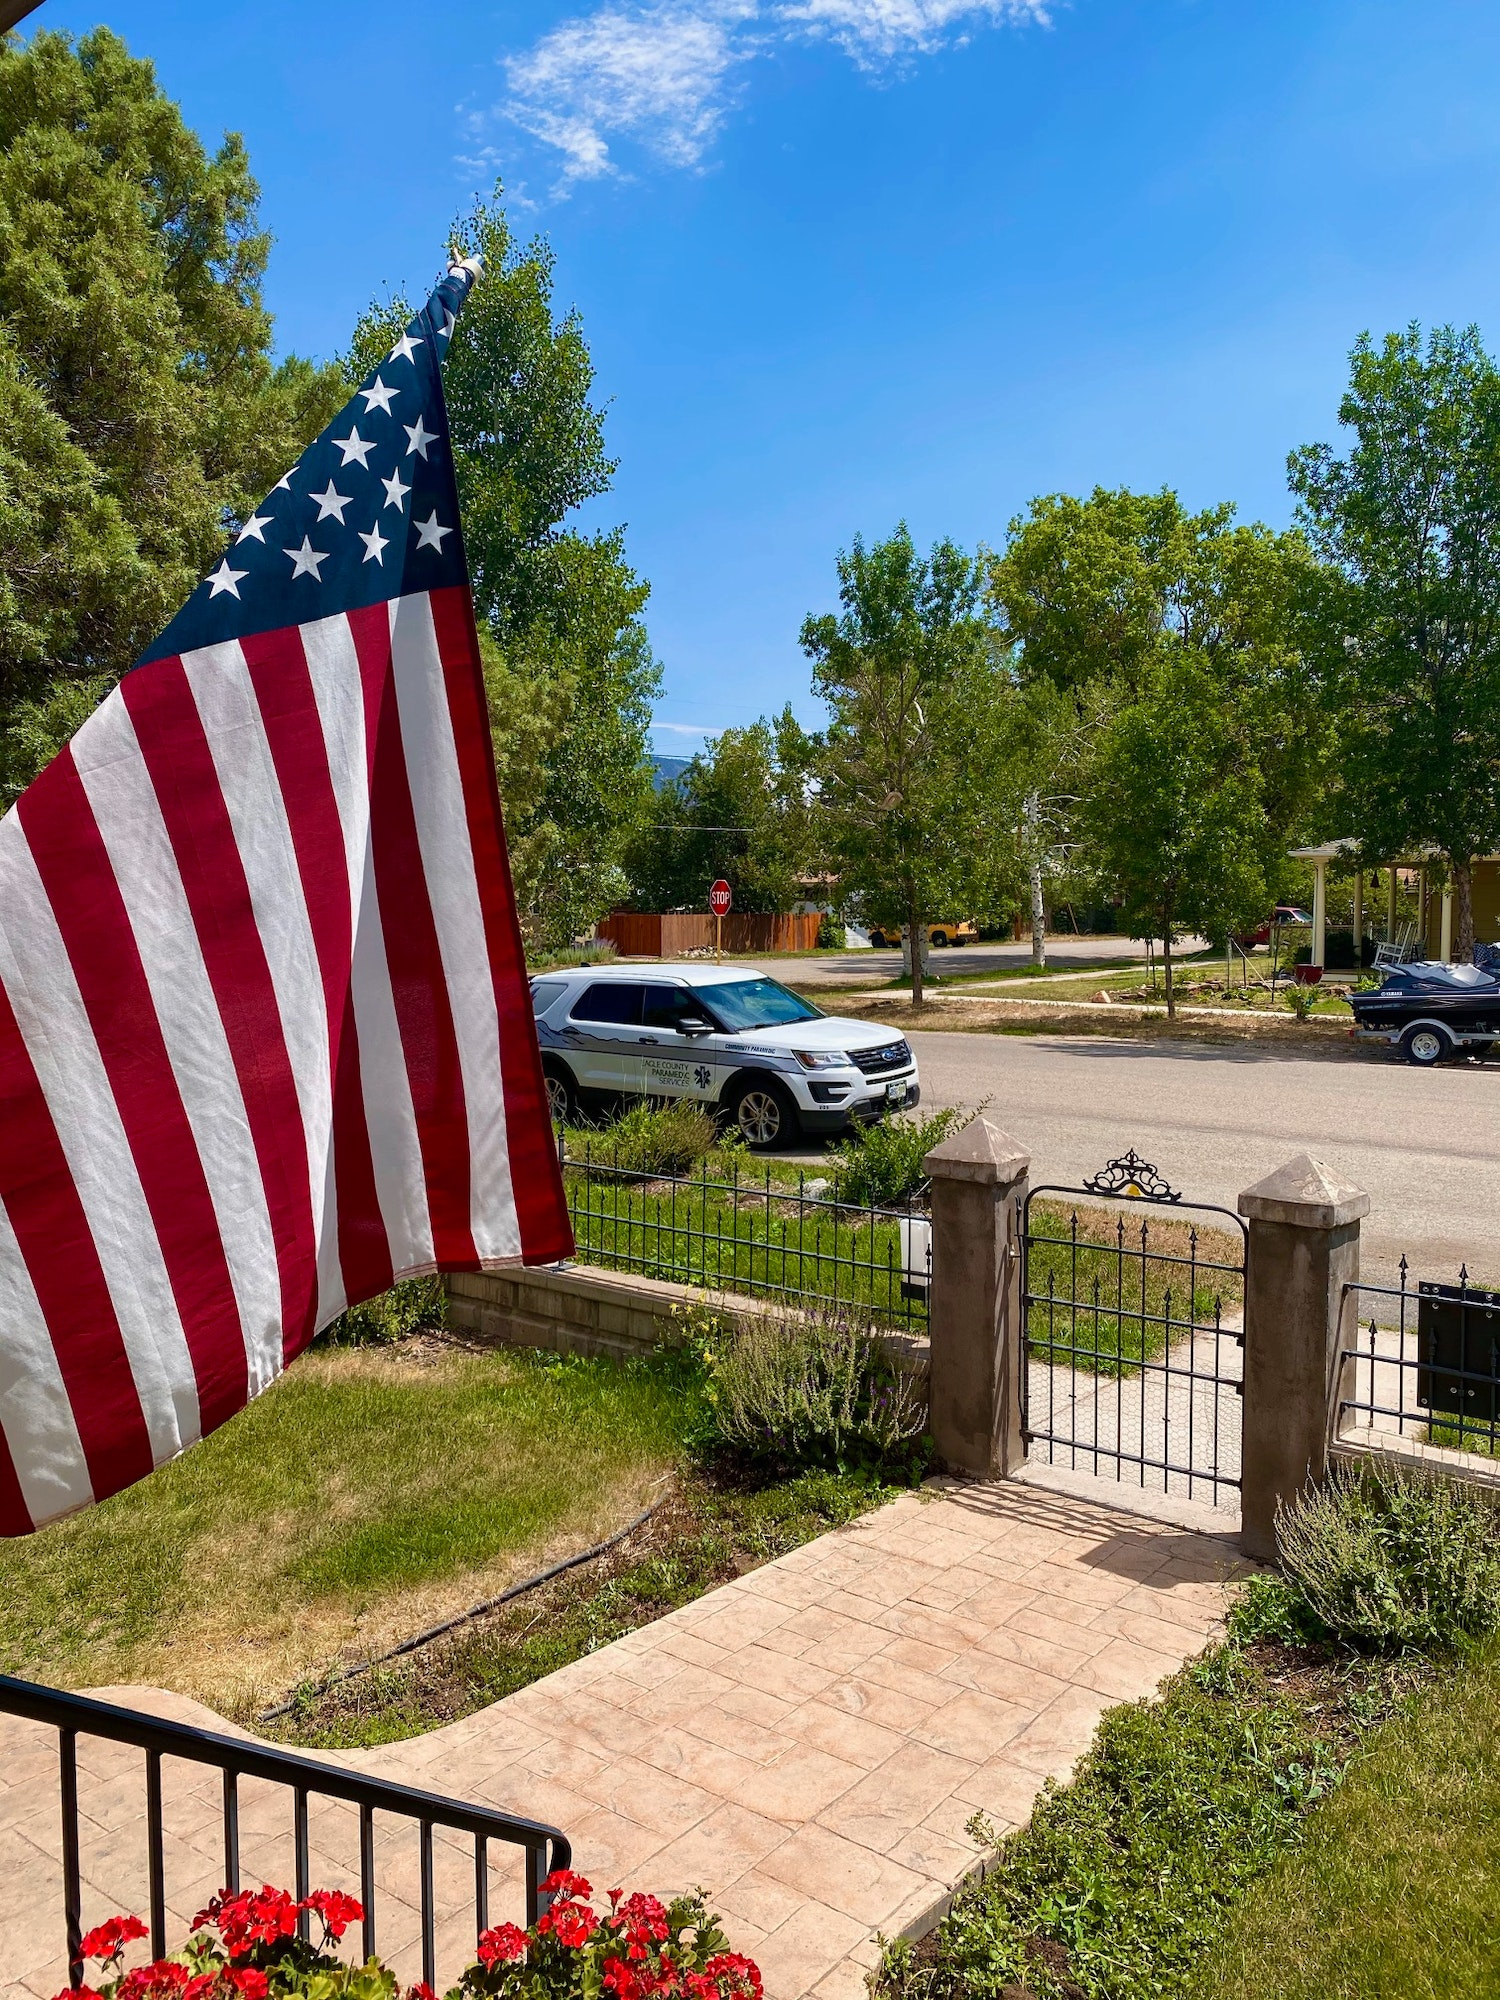 American flag on a house with a Community Paramedic vehicle parked by the curb